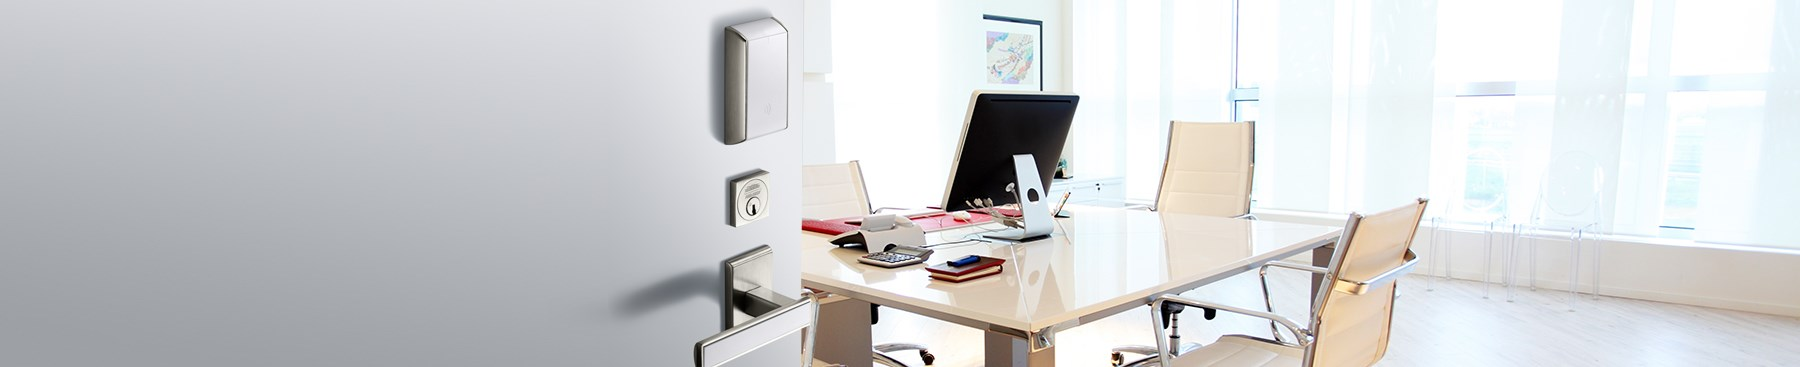 Access Control Solutions from ASSA ABLOY - The global leader in door